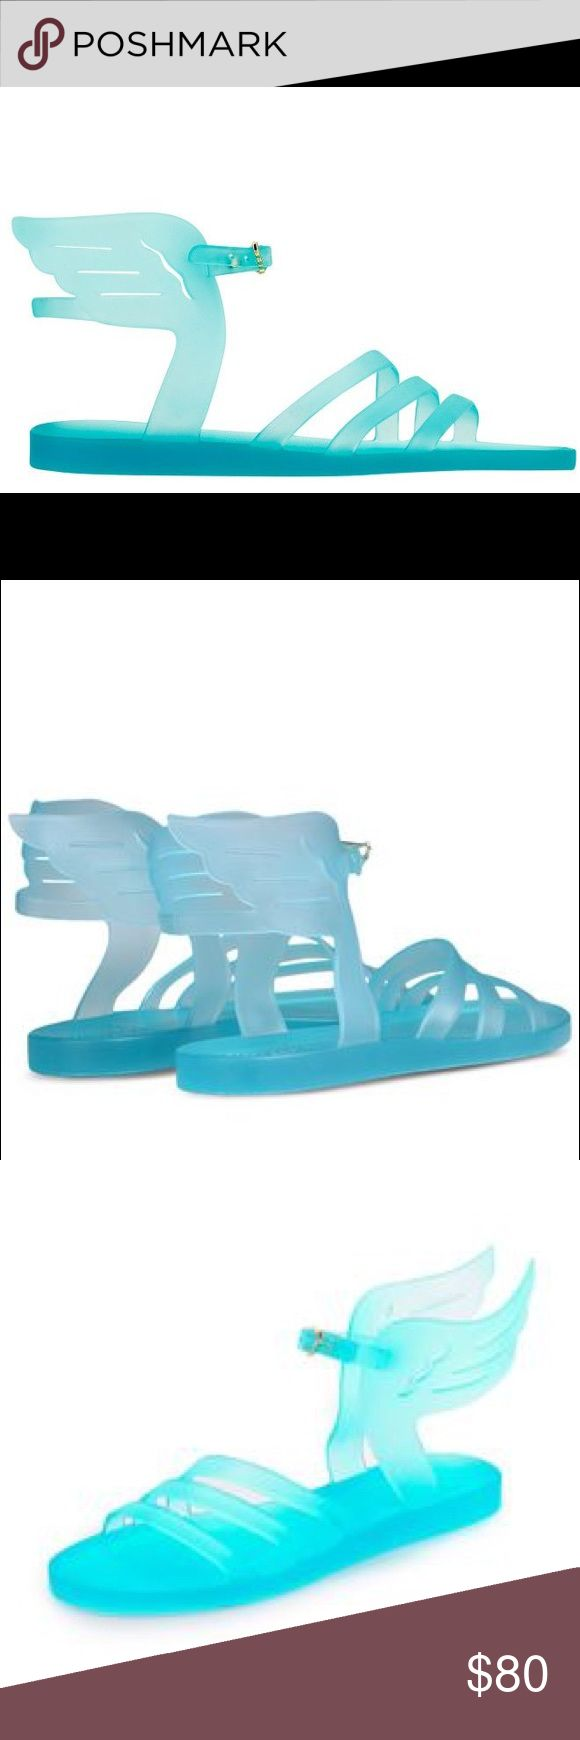 Clear Turquoise Jelly Ancient Greek Sandals Plastic / Jelly • Clear Turquoise • Size 38 • Cute Wing Design   Only wore these 2.5 times! (To get the mail barely counts.) These are adorable, but they're a little too snug for my feet! I feel like they're better for a 7-7.5 rather than the 7.5-8 that I am. I'll clean the bottoms and try to get a pedicure before taking photos of them on. They're great for summer, and look amazing with any outfit. They look good on the legs, too. Ancient Greek…